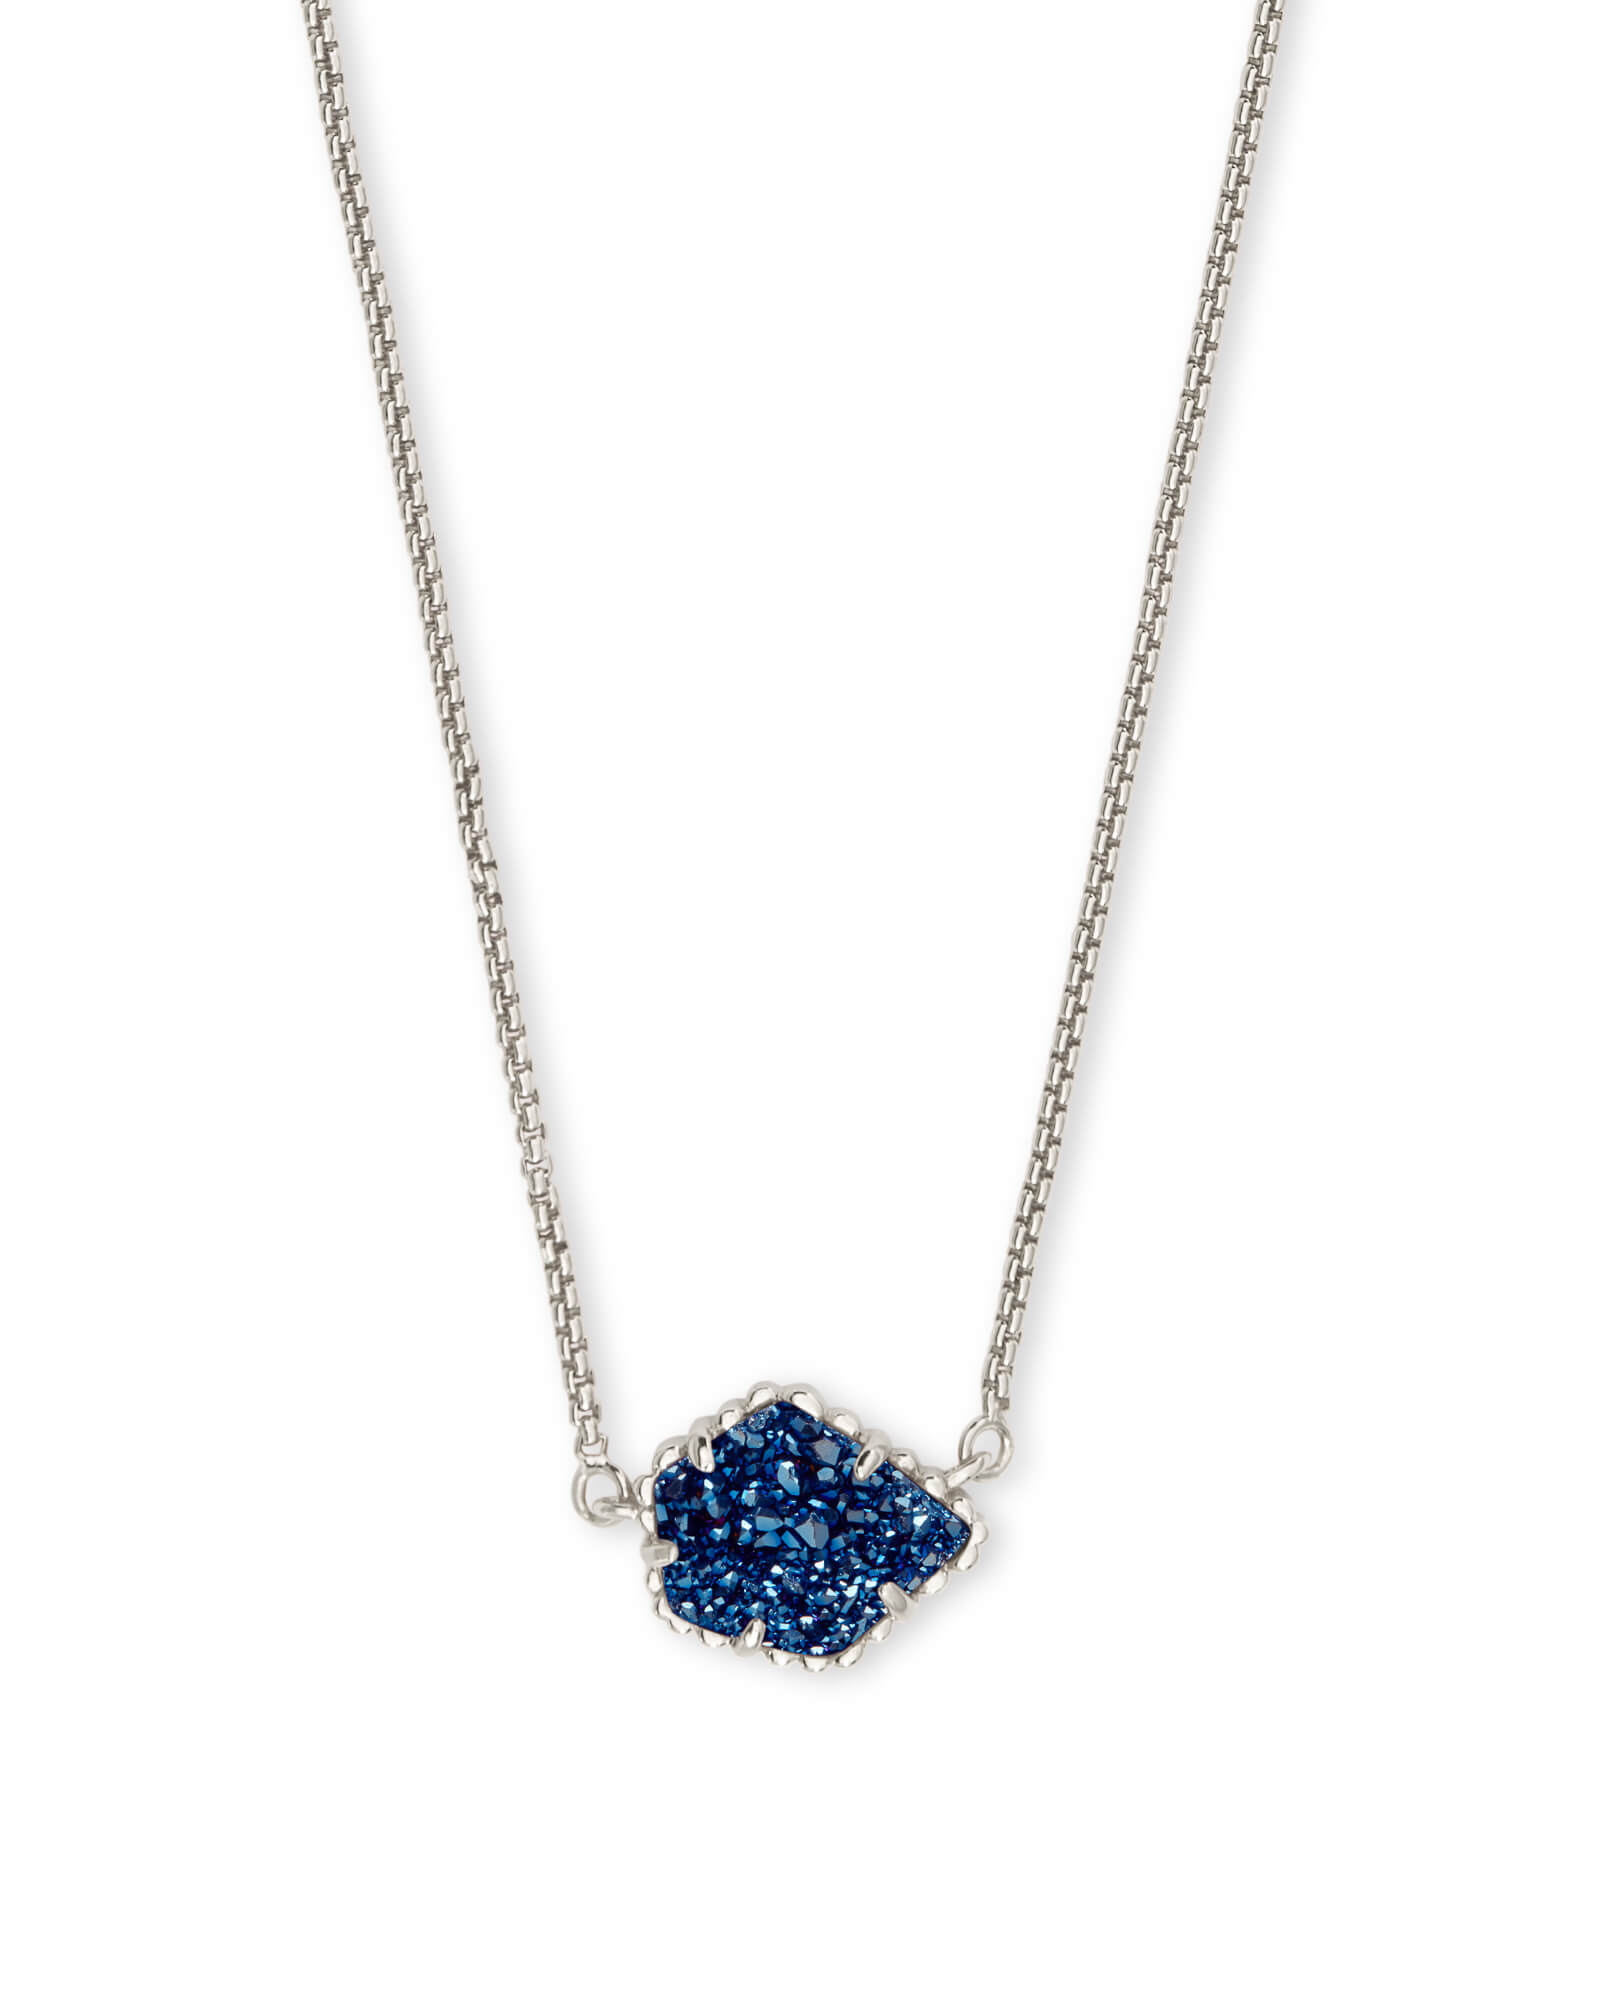 Tess Silver Pendant Necklace in Blue Drusy